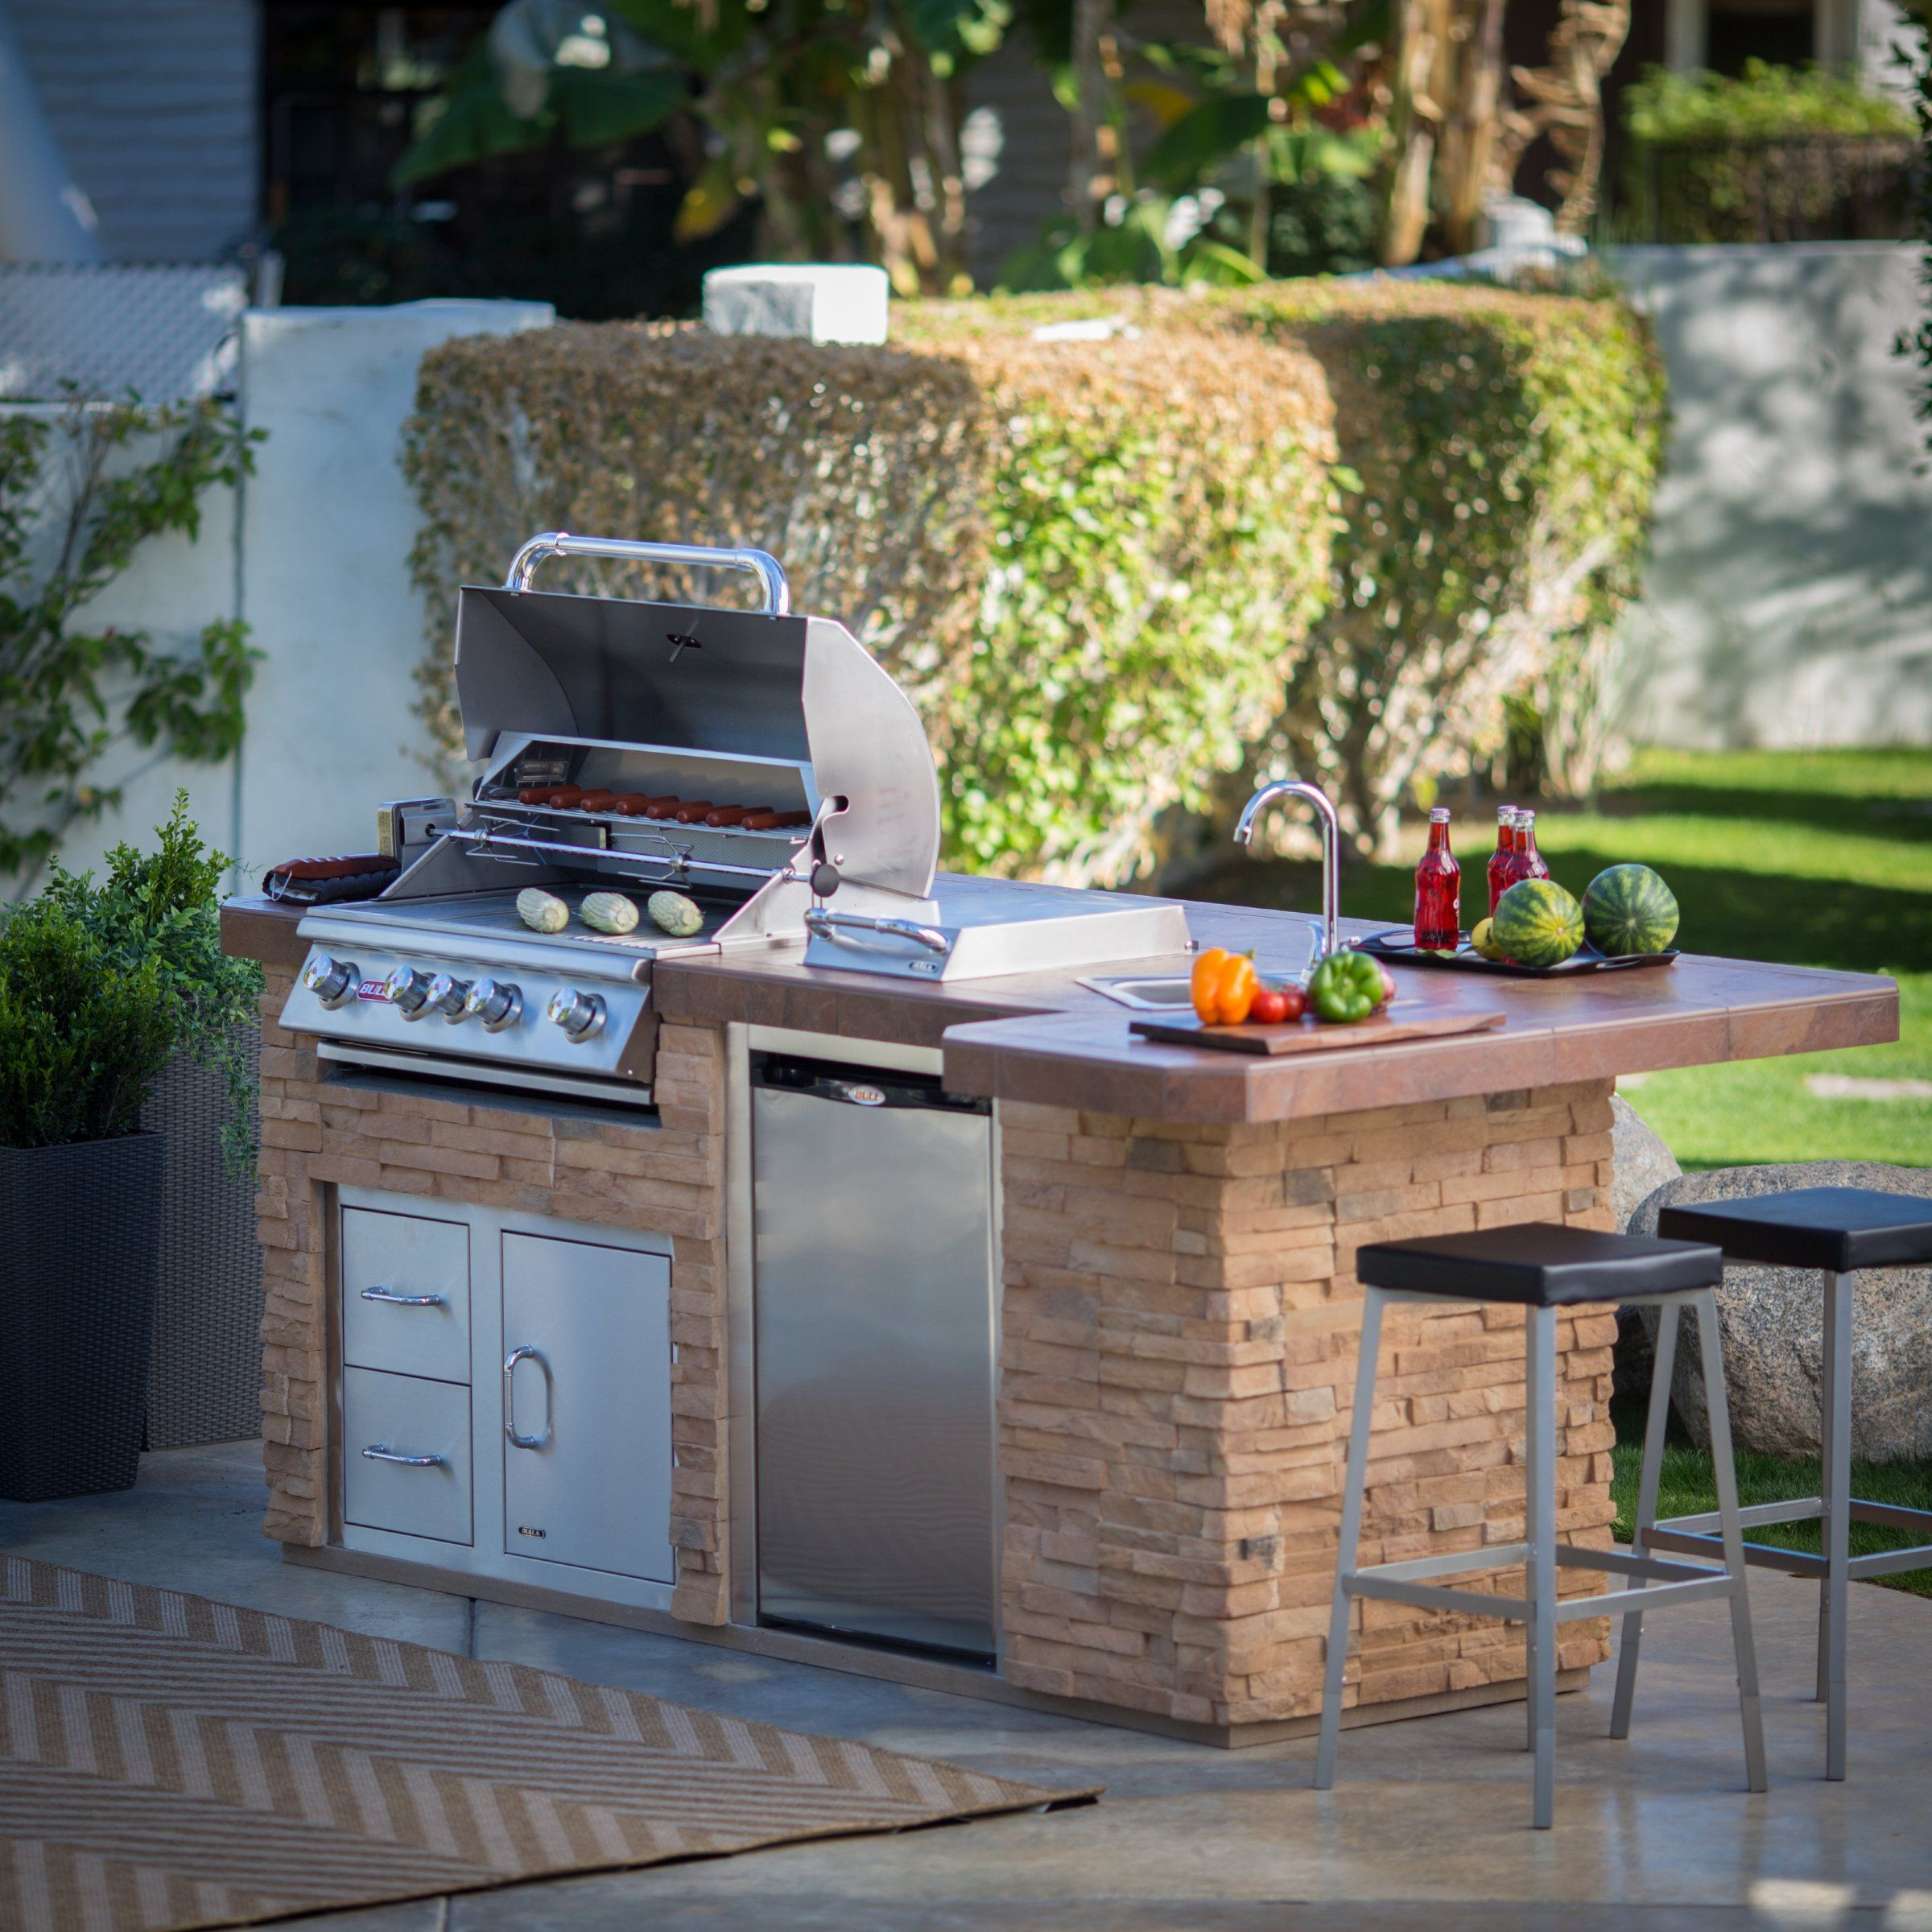 This Heavy Duty, Galvanized Steel Framed Grill Island